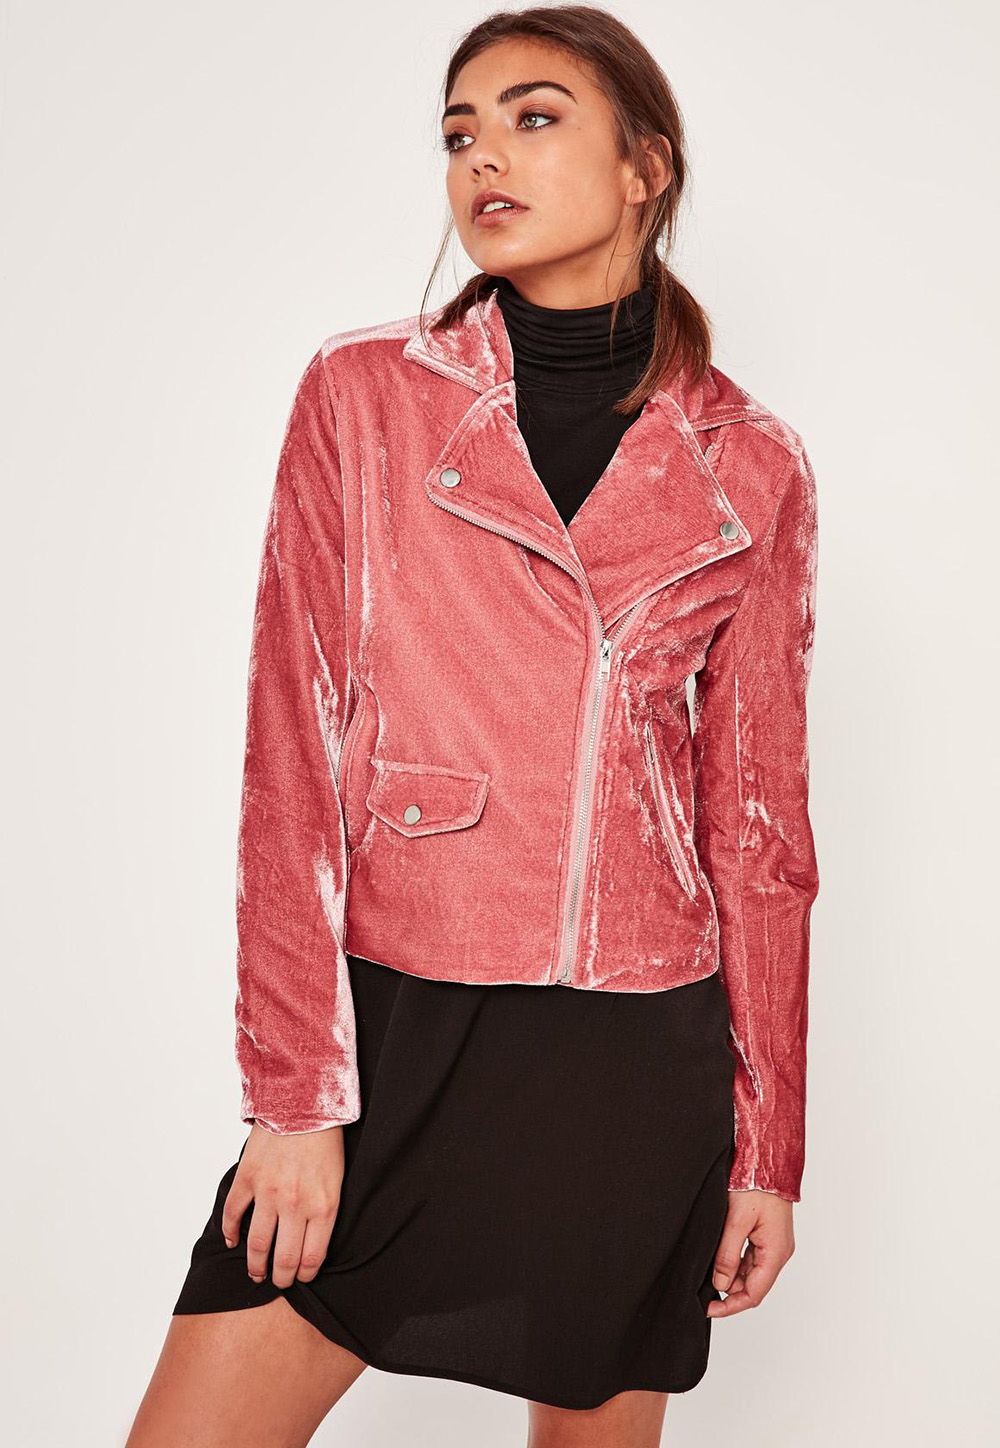 Missguided Pink Velvet Biker Jacket | Valentine's Day Gift Guide